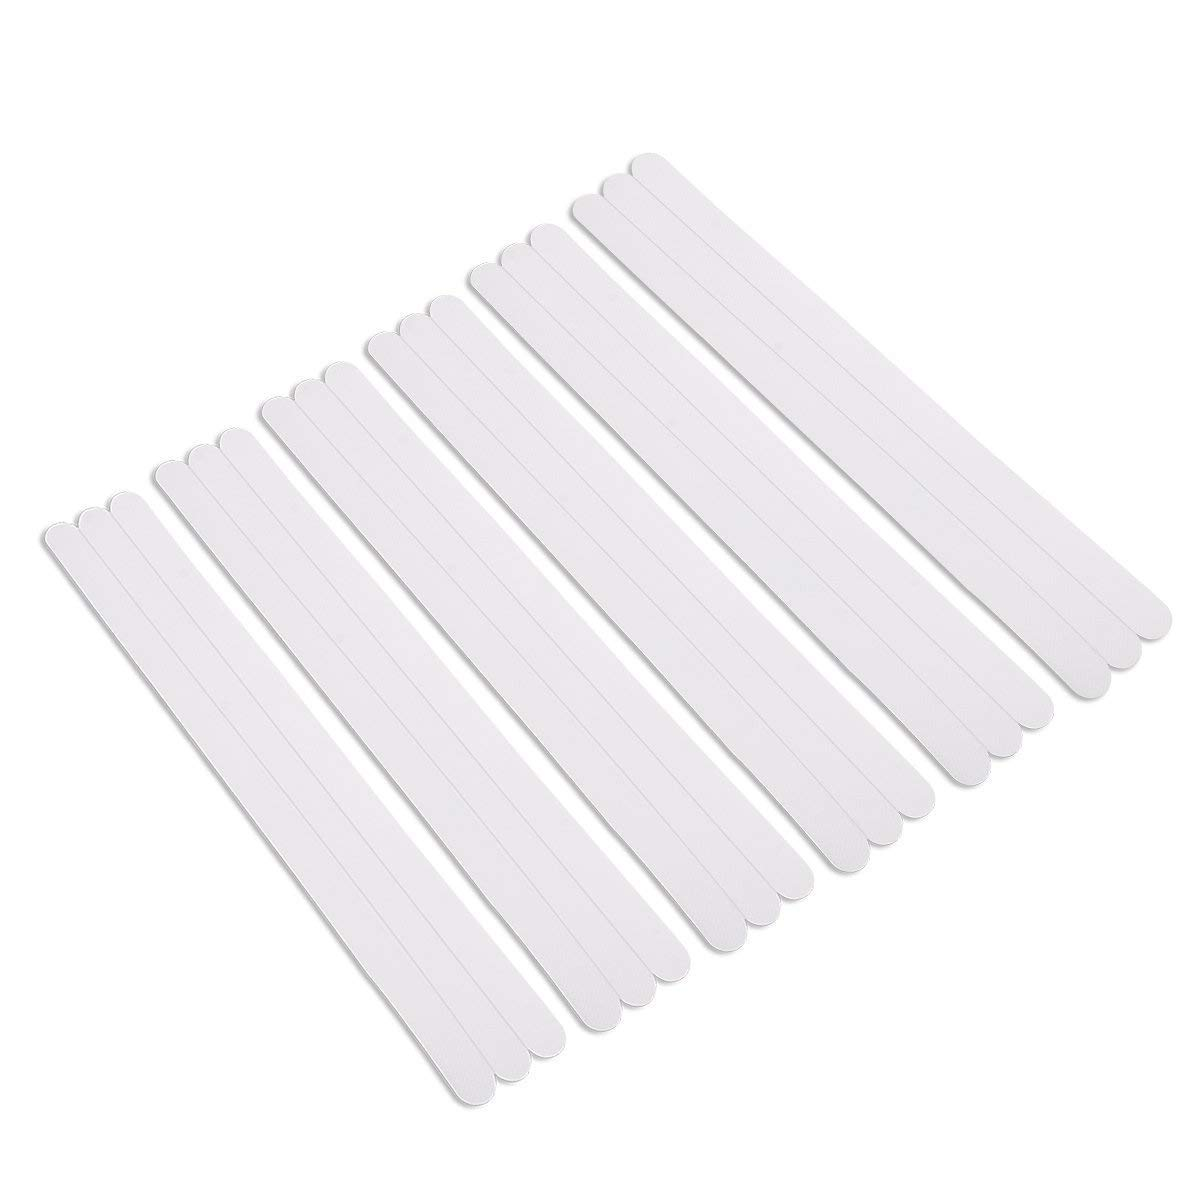 Anti-slip Sticker Strips,Aieve Non-Slip Safety Bath Treads Adhesive Strips Flooring Mats for Bath and Shower(12 Pcs) AieveDirect